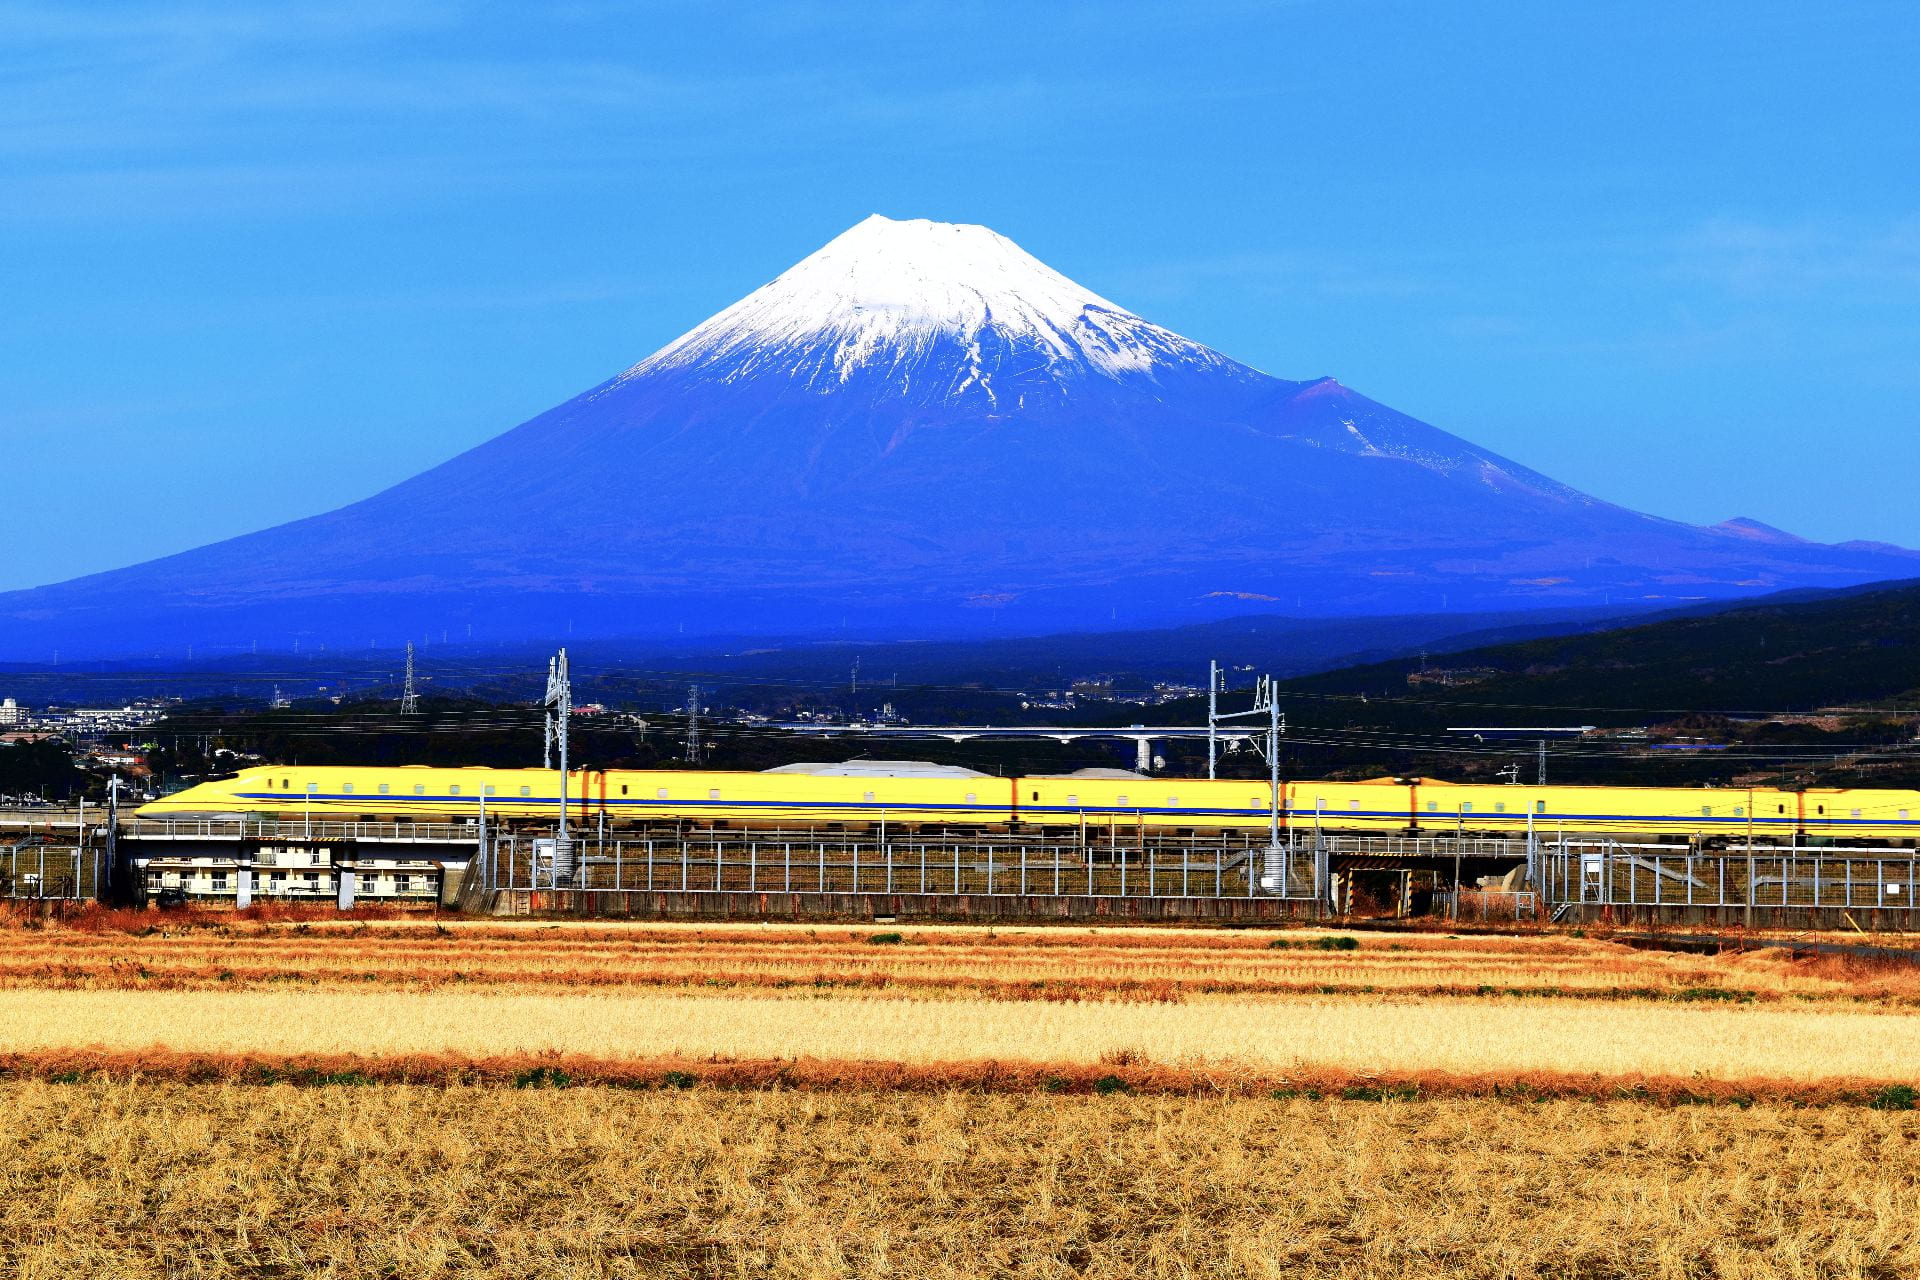 Dr. Yellow by Mount Fuji © Nate Hemerly, D.O., Department of Family and Community Medicine